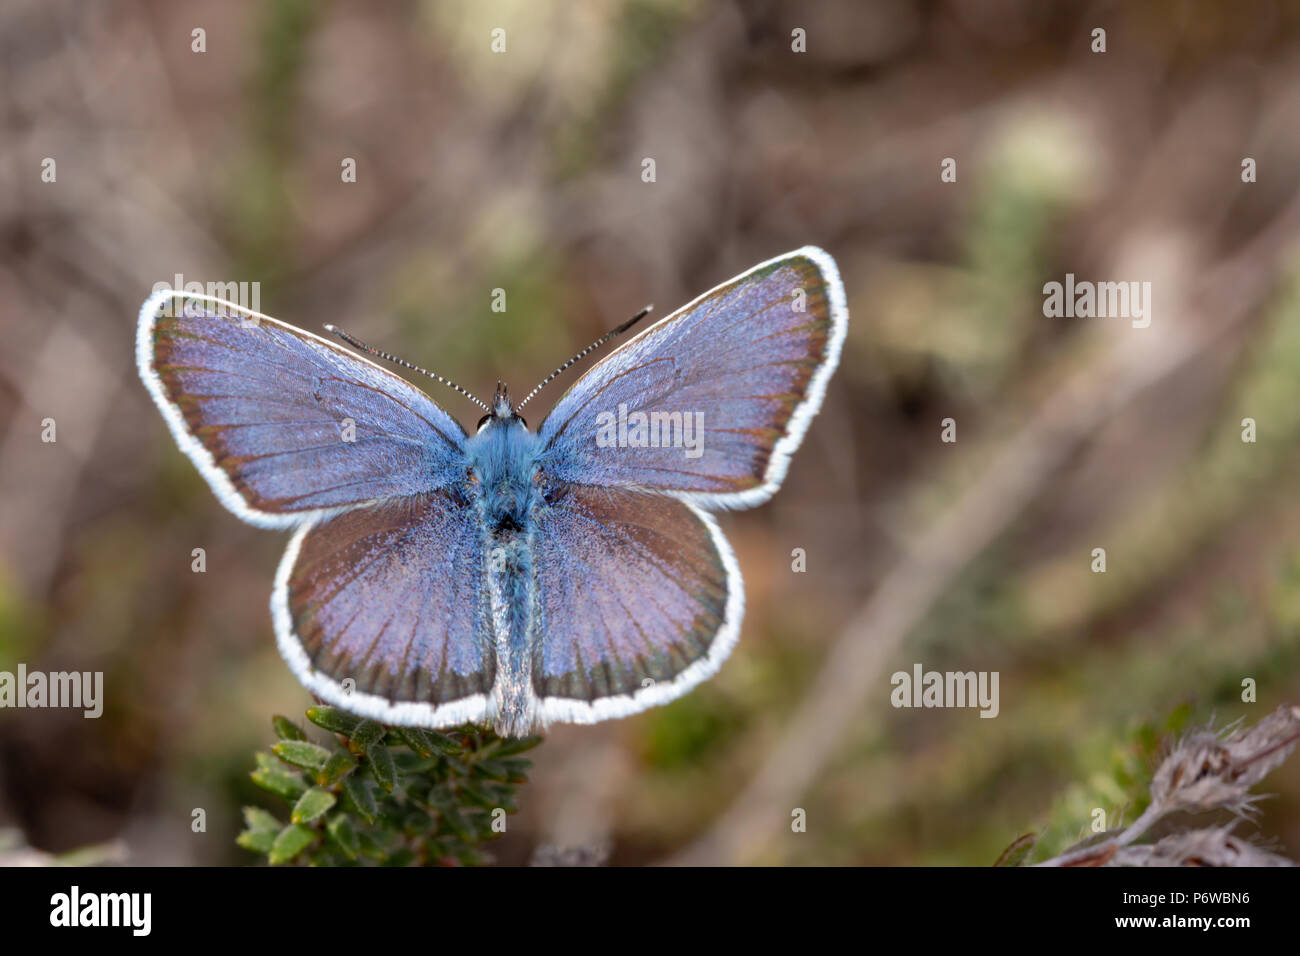 Close-up photo of Silver-studded blue butterfly with wings open and from above. shot with narrow depth of field on Canford heath nature reserve, Poole Stock Photo